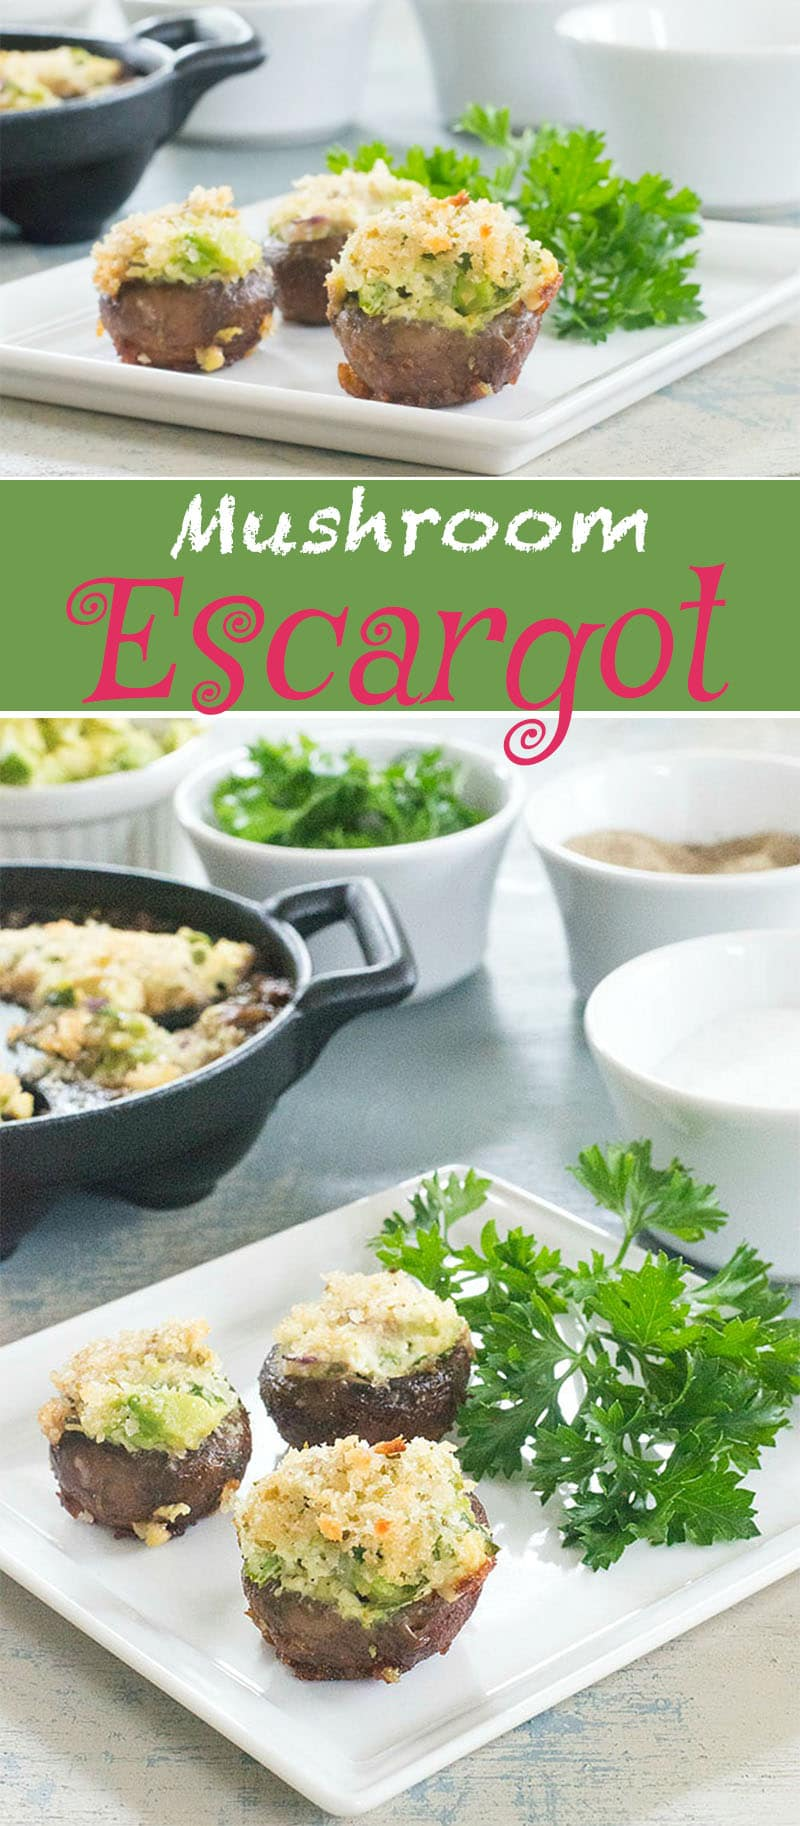 A simple escargot recipe that vegetarians & vegans can appreciate. Made with mushrooms, avocado, soft tofu and parsley. Vegan appetizer recipe for any party